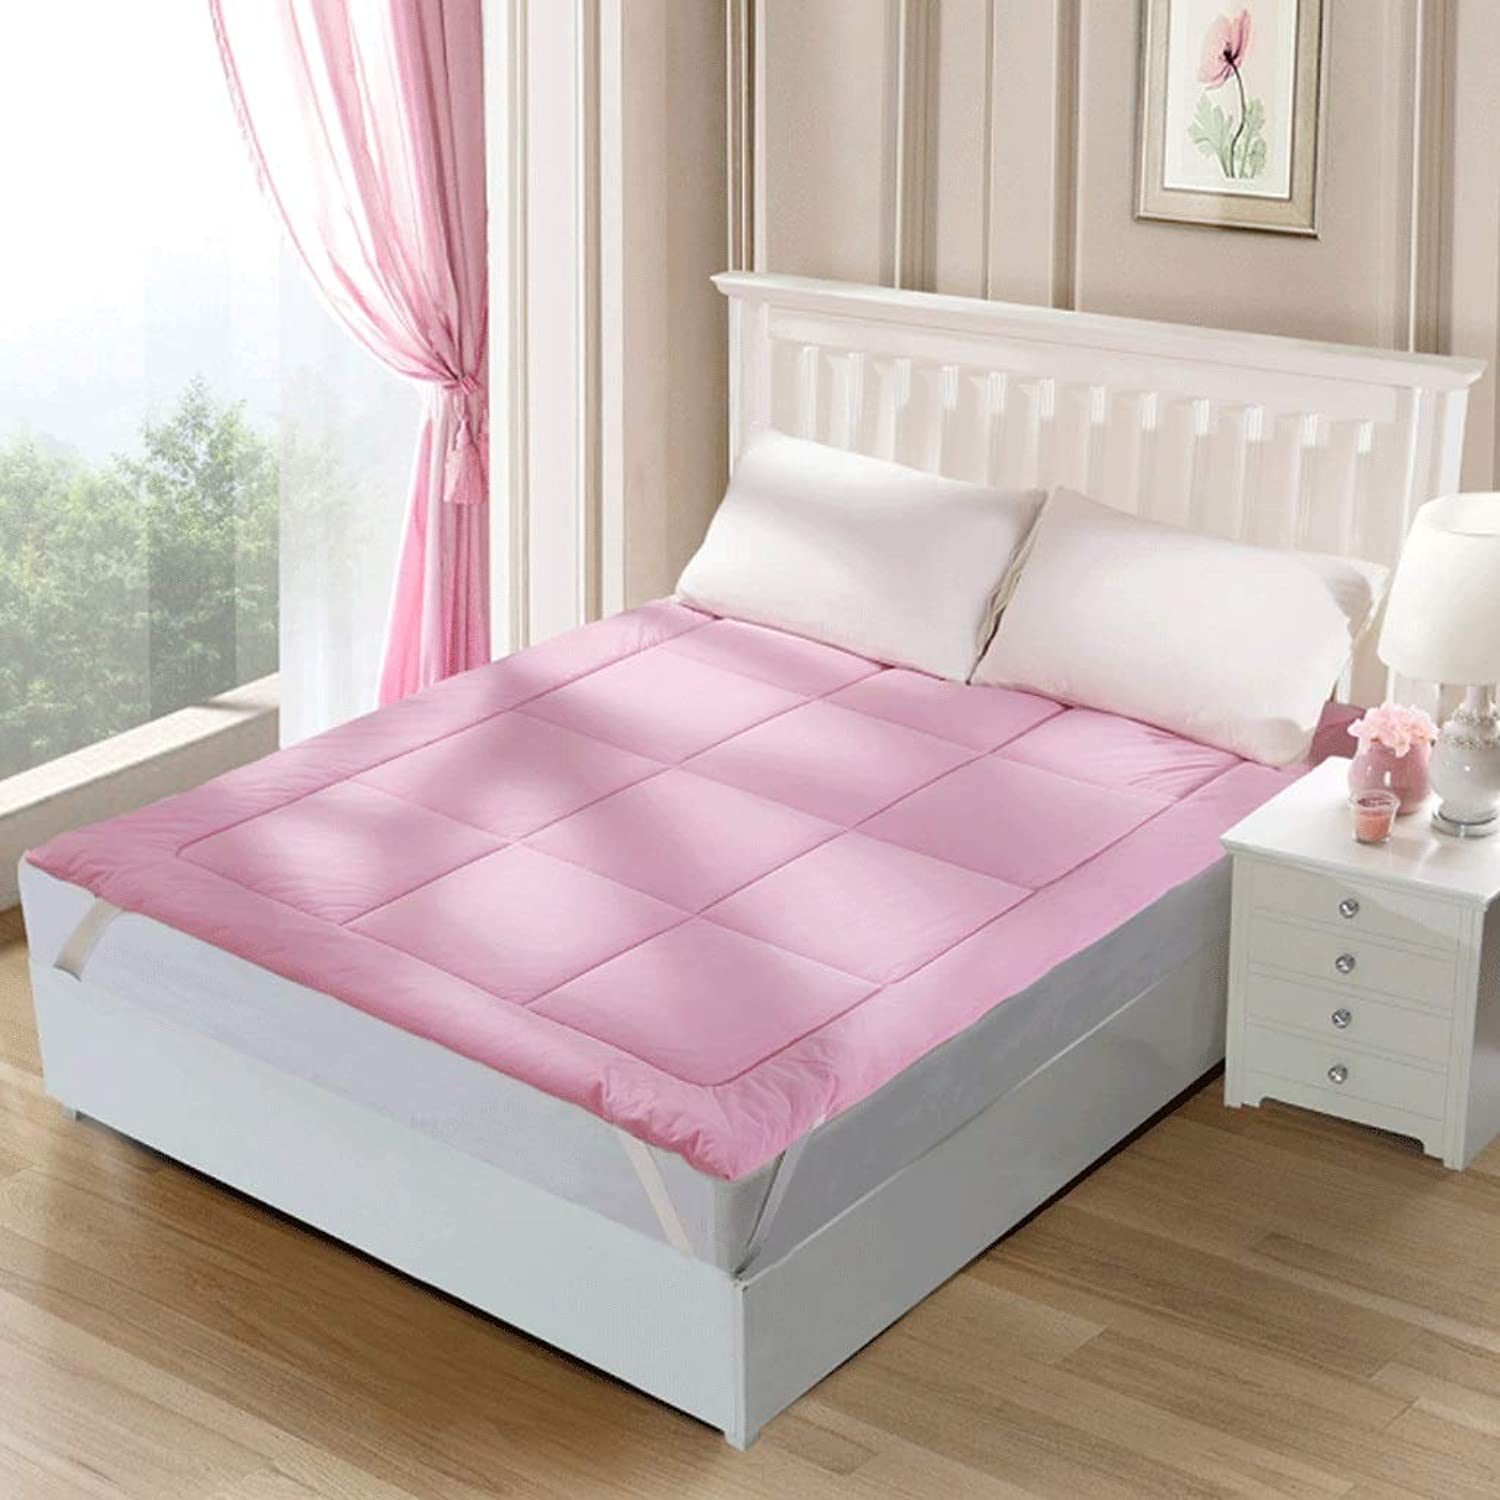 Tatami Mattress On Both Sides with Soft Foldable Double Bedroom Sleeping Mat Single Dormitory Mat +A (color   Pink, Size   120X200cm)